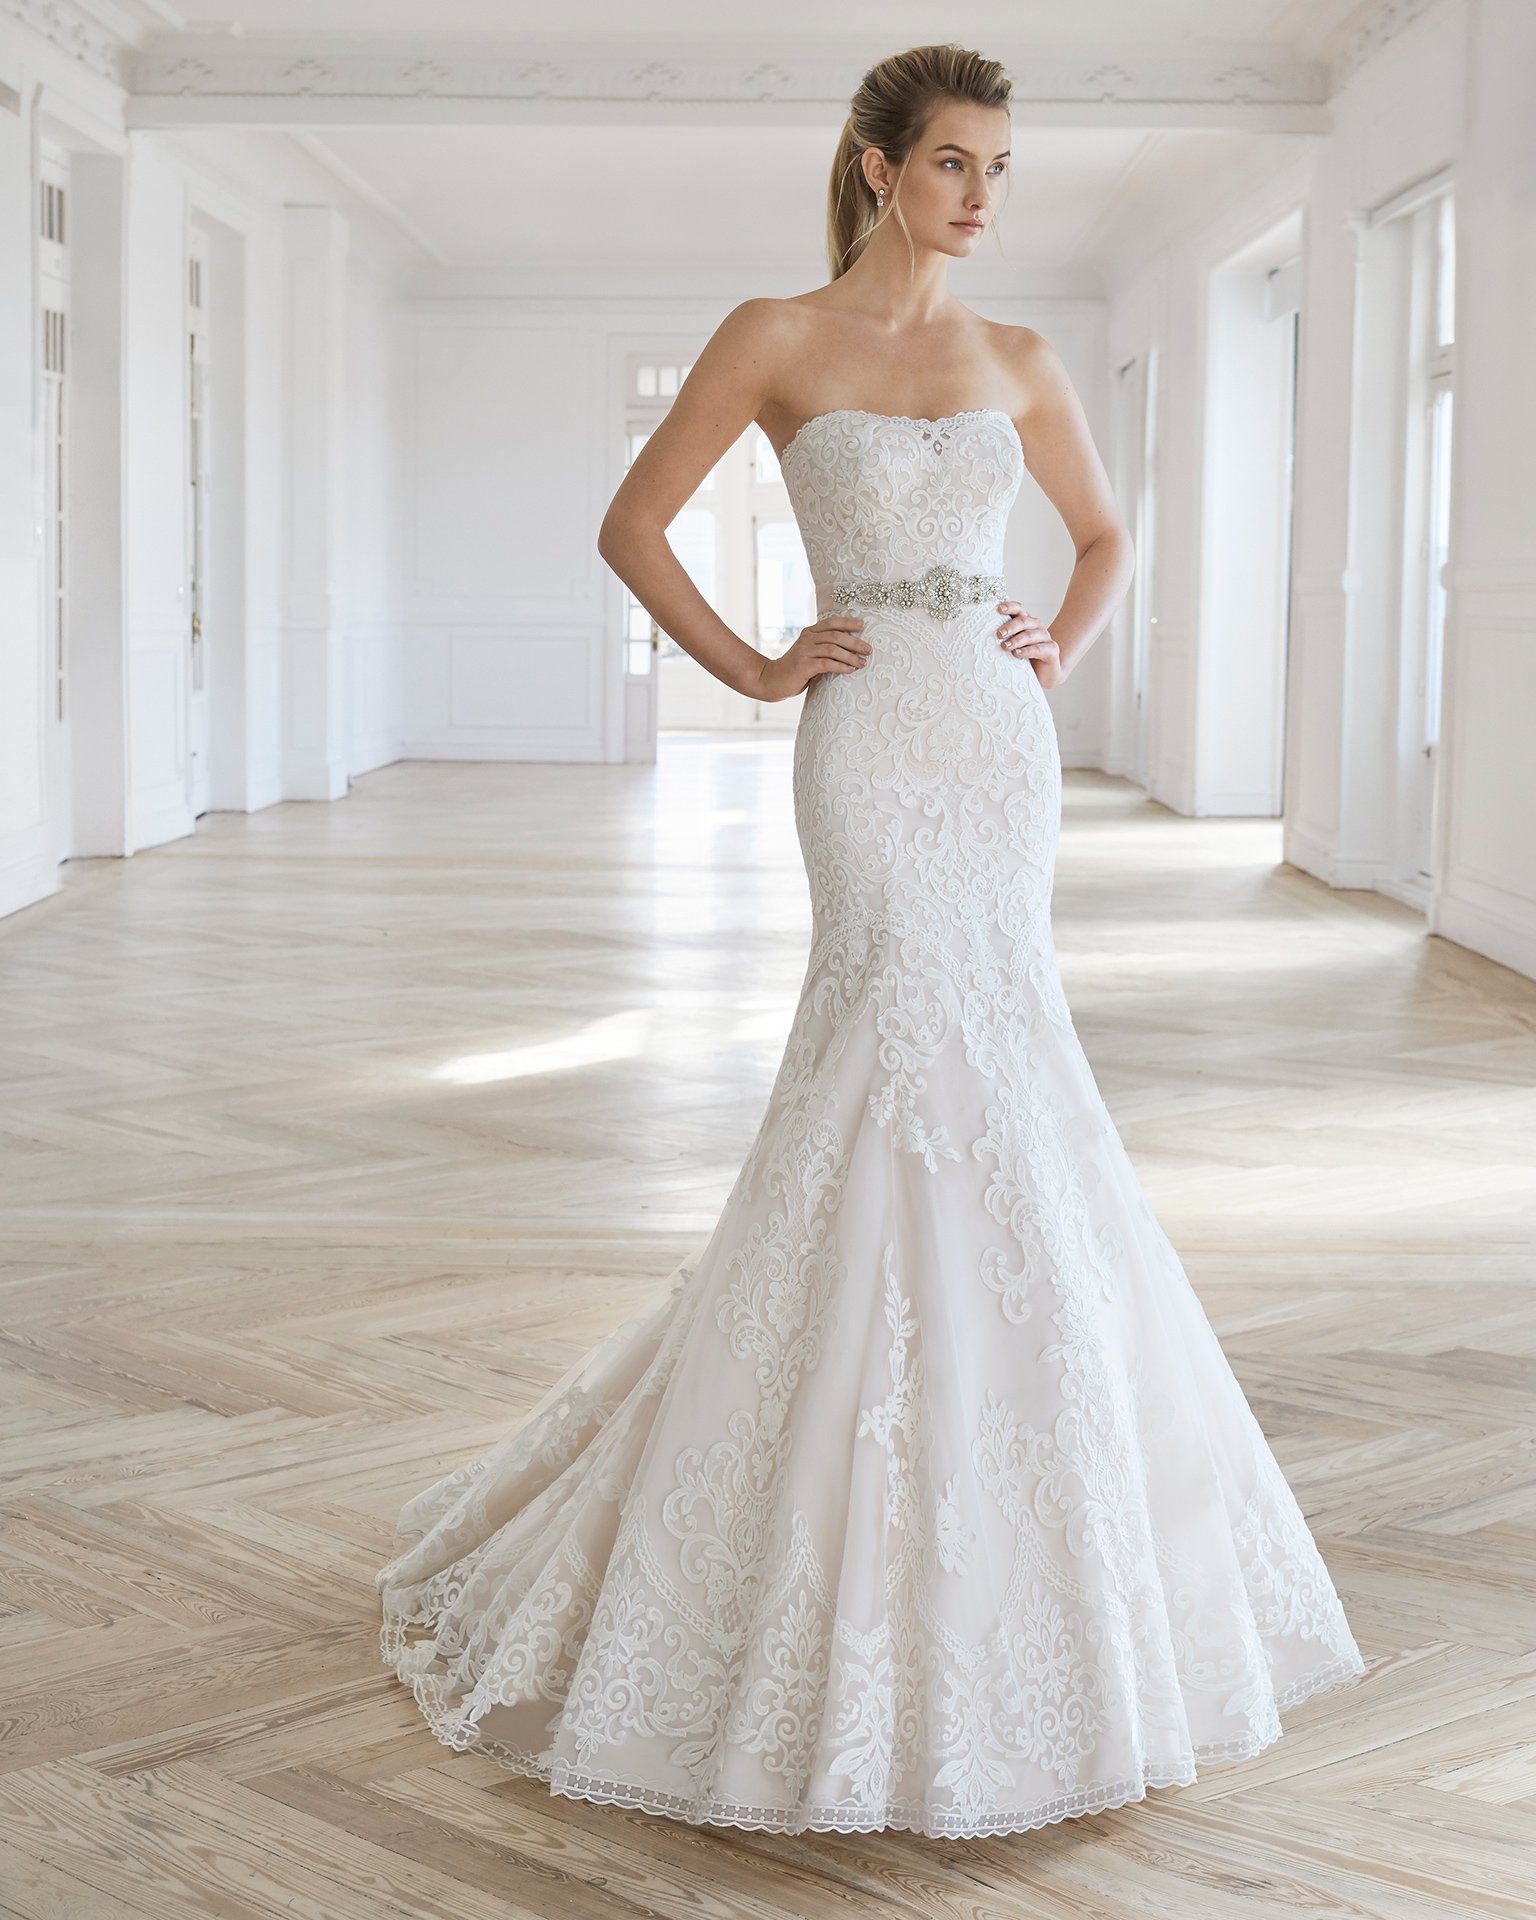 Sheath-style wedding dress in beaded lace. Strapless neckline, back with bow at rear and beaded belt. Available in ivory and natural/champagne. 2019 AIRE BARCELONA Collection.